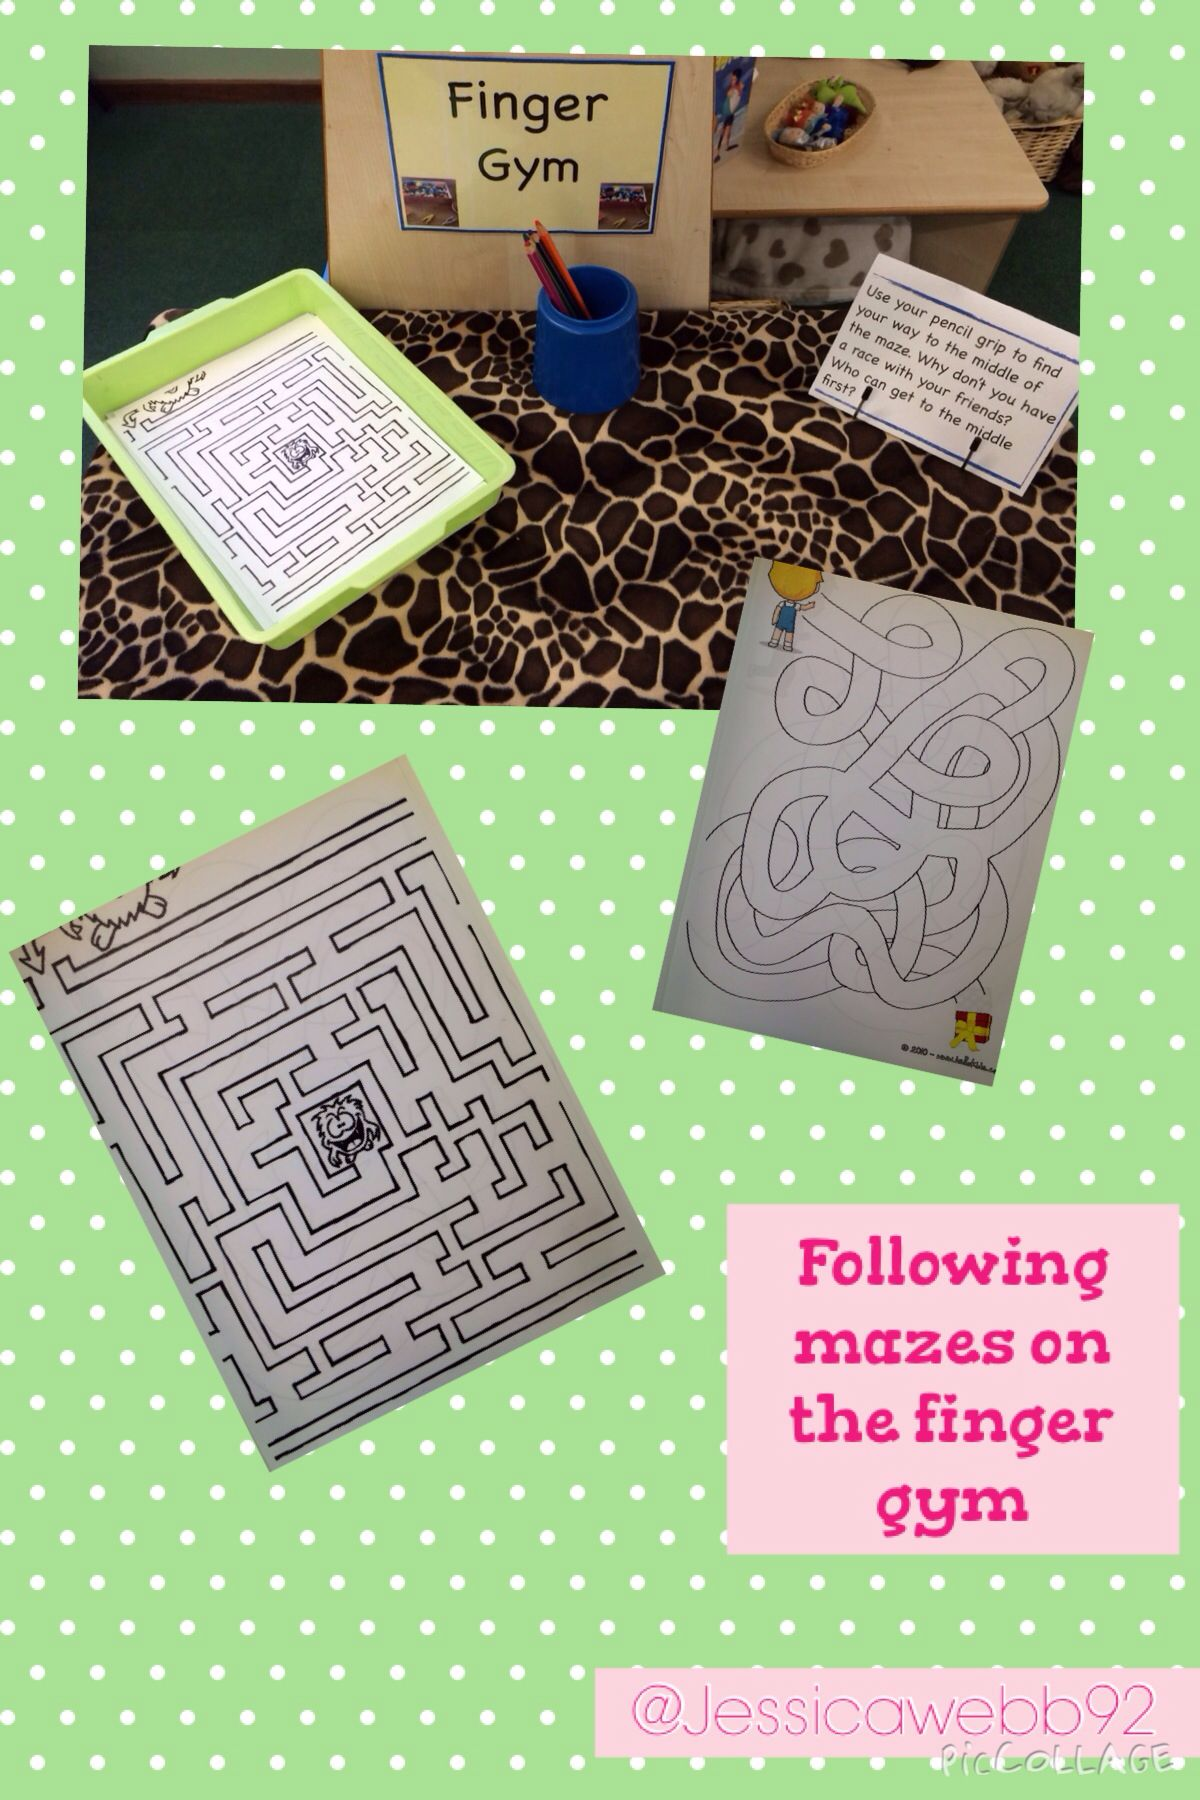 tracing the mazes on the finger gym early years motor skills fine motor skills development. Black Bedroom Furniture Sets. Home Design Ideas